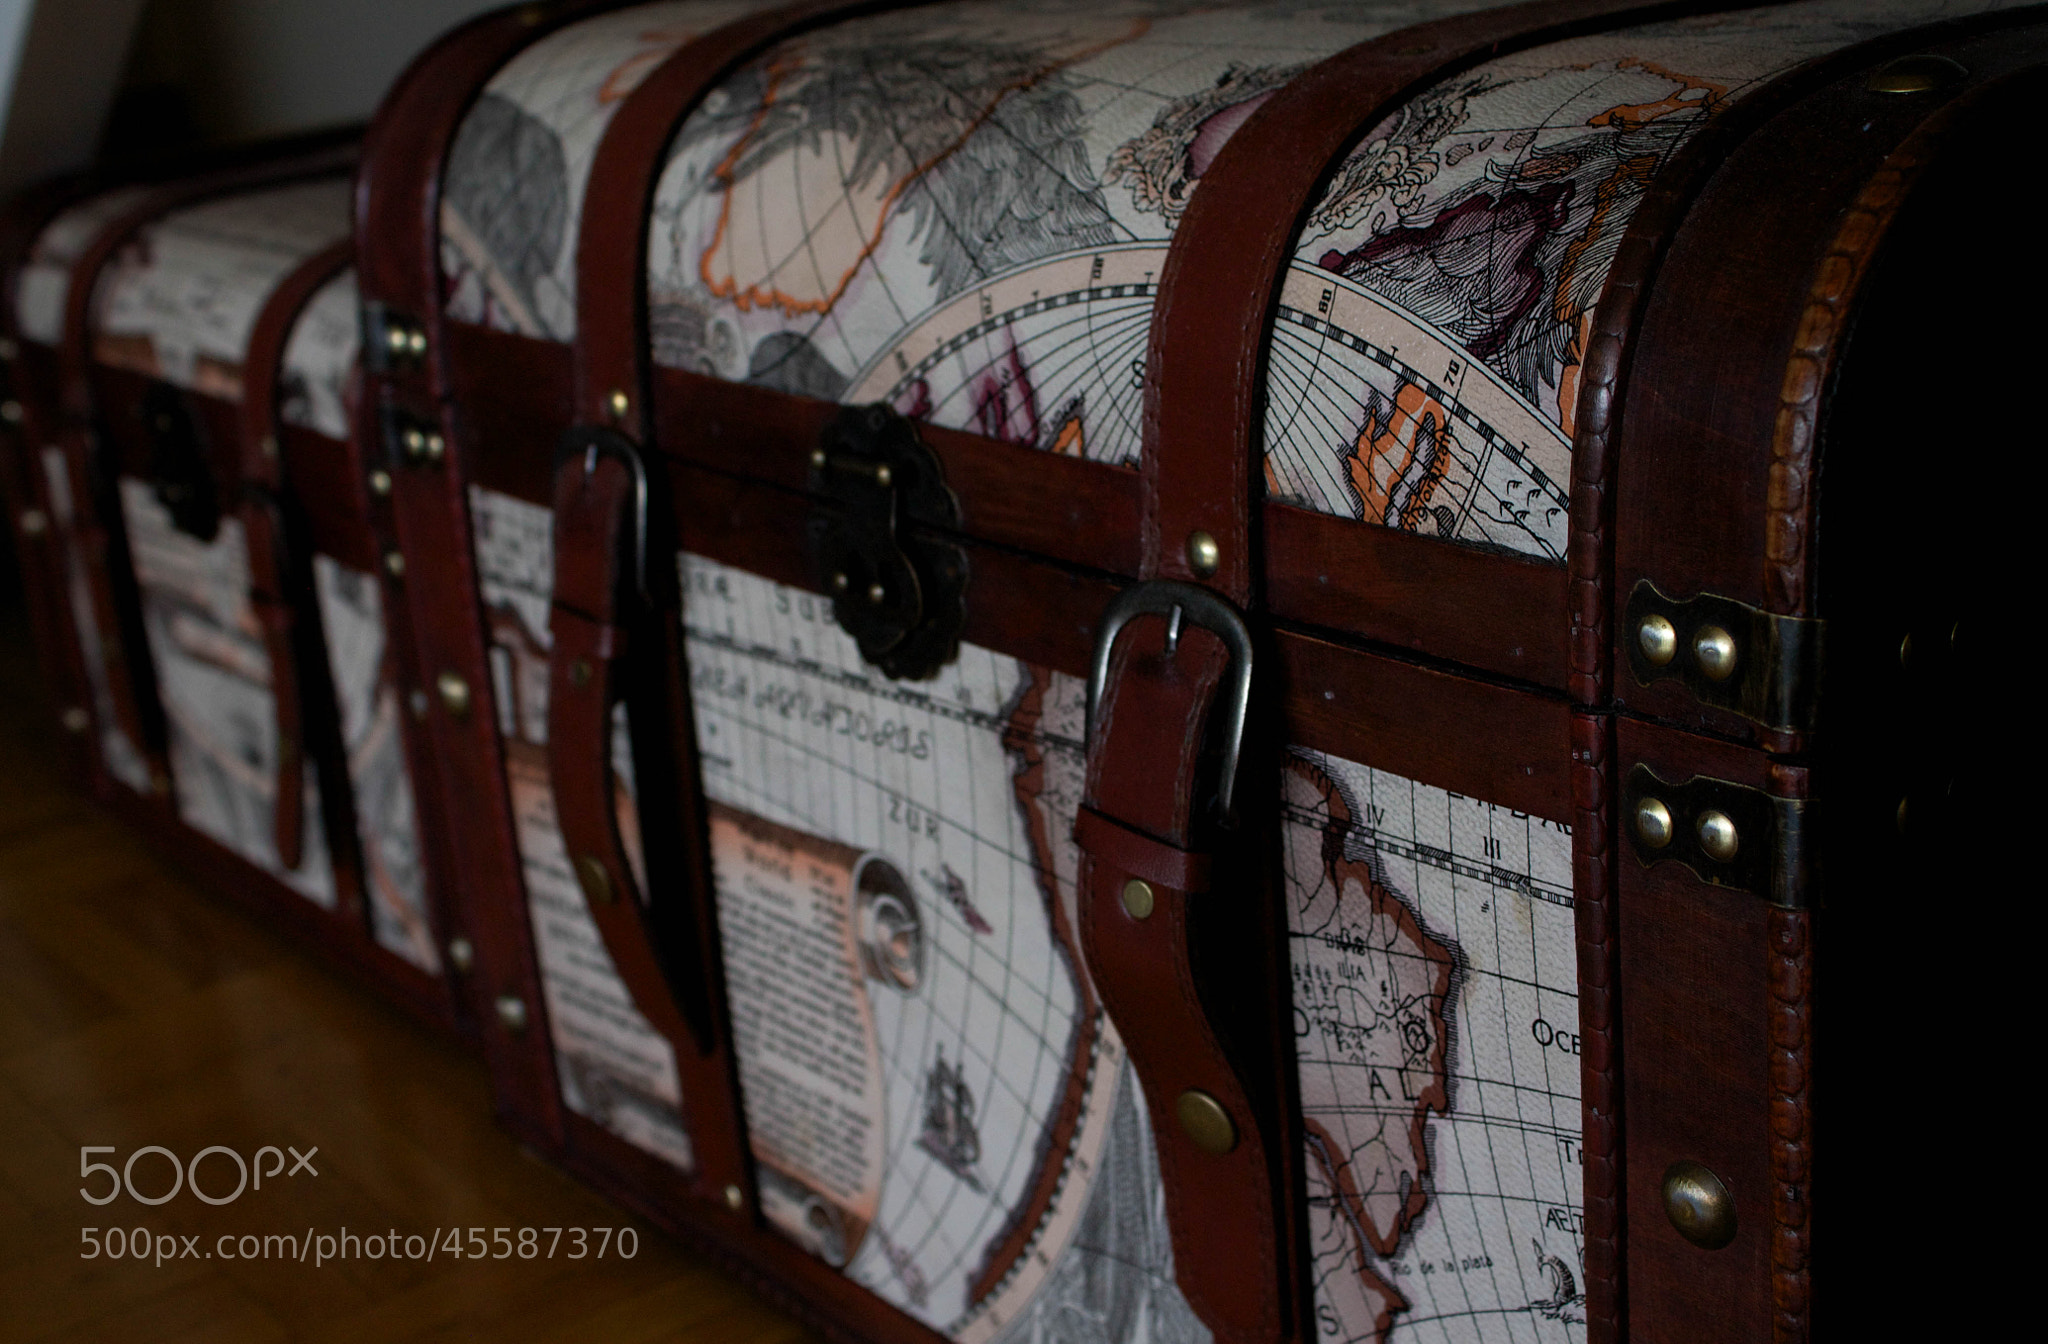 Photograph Travel box by Aerni Adeline on 500px